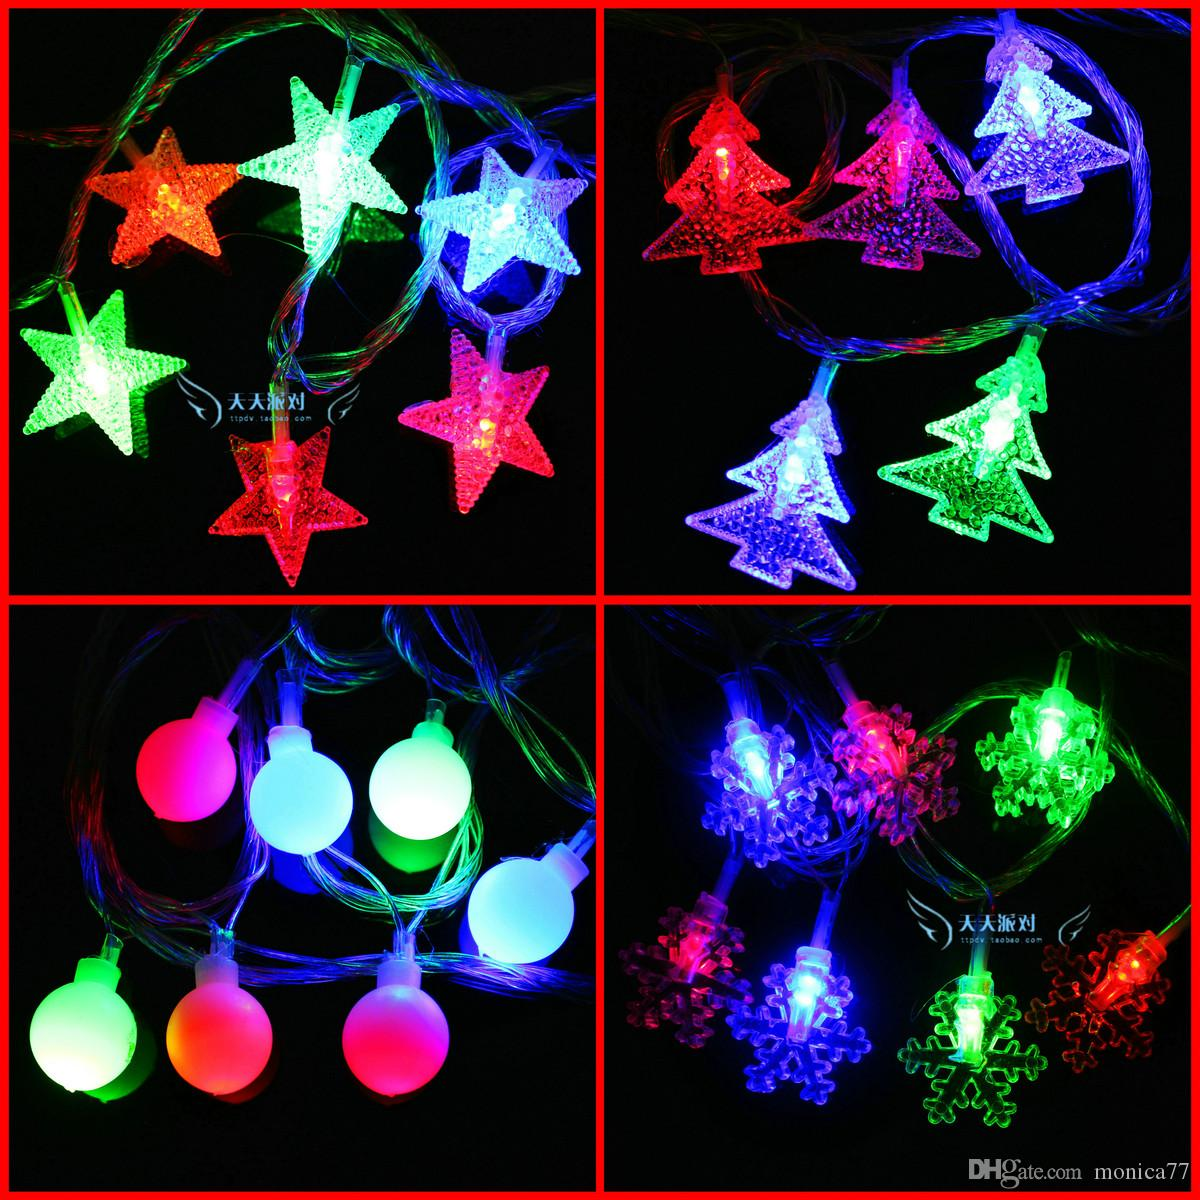 Cheap Led Lights Lights String Christmas Tree Five Pointed Star Lights Flash String Lights 288 Christmas Ktv Bar Decorations Outdoor Patio String Lights ...  sc 1 st  DHgate.com & Cheap Led Lights Lights String Christmas Tree Five Pointed Star ... azcodes.com